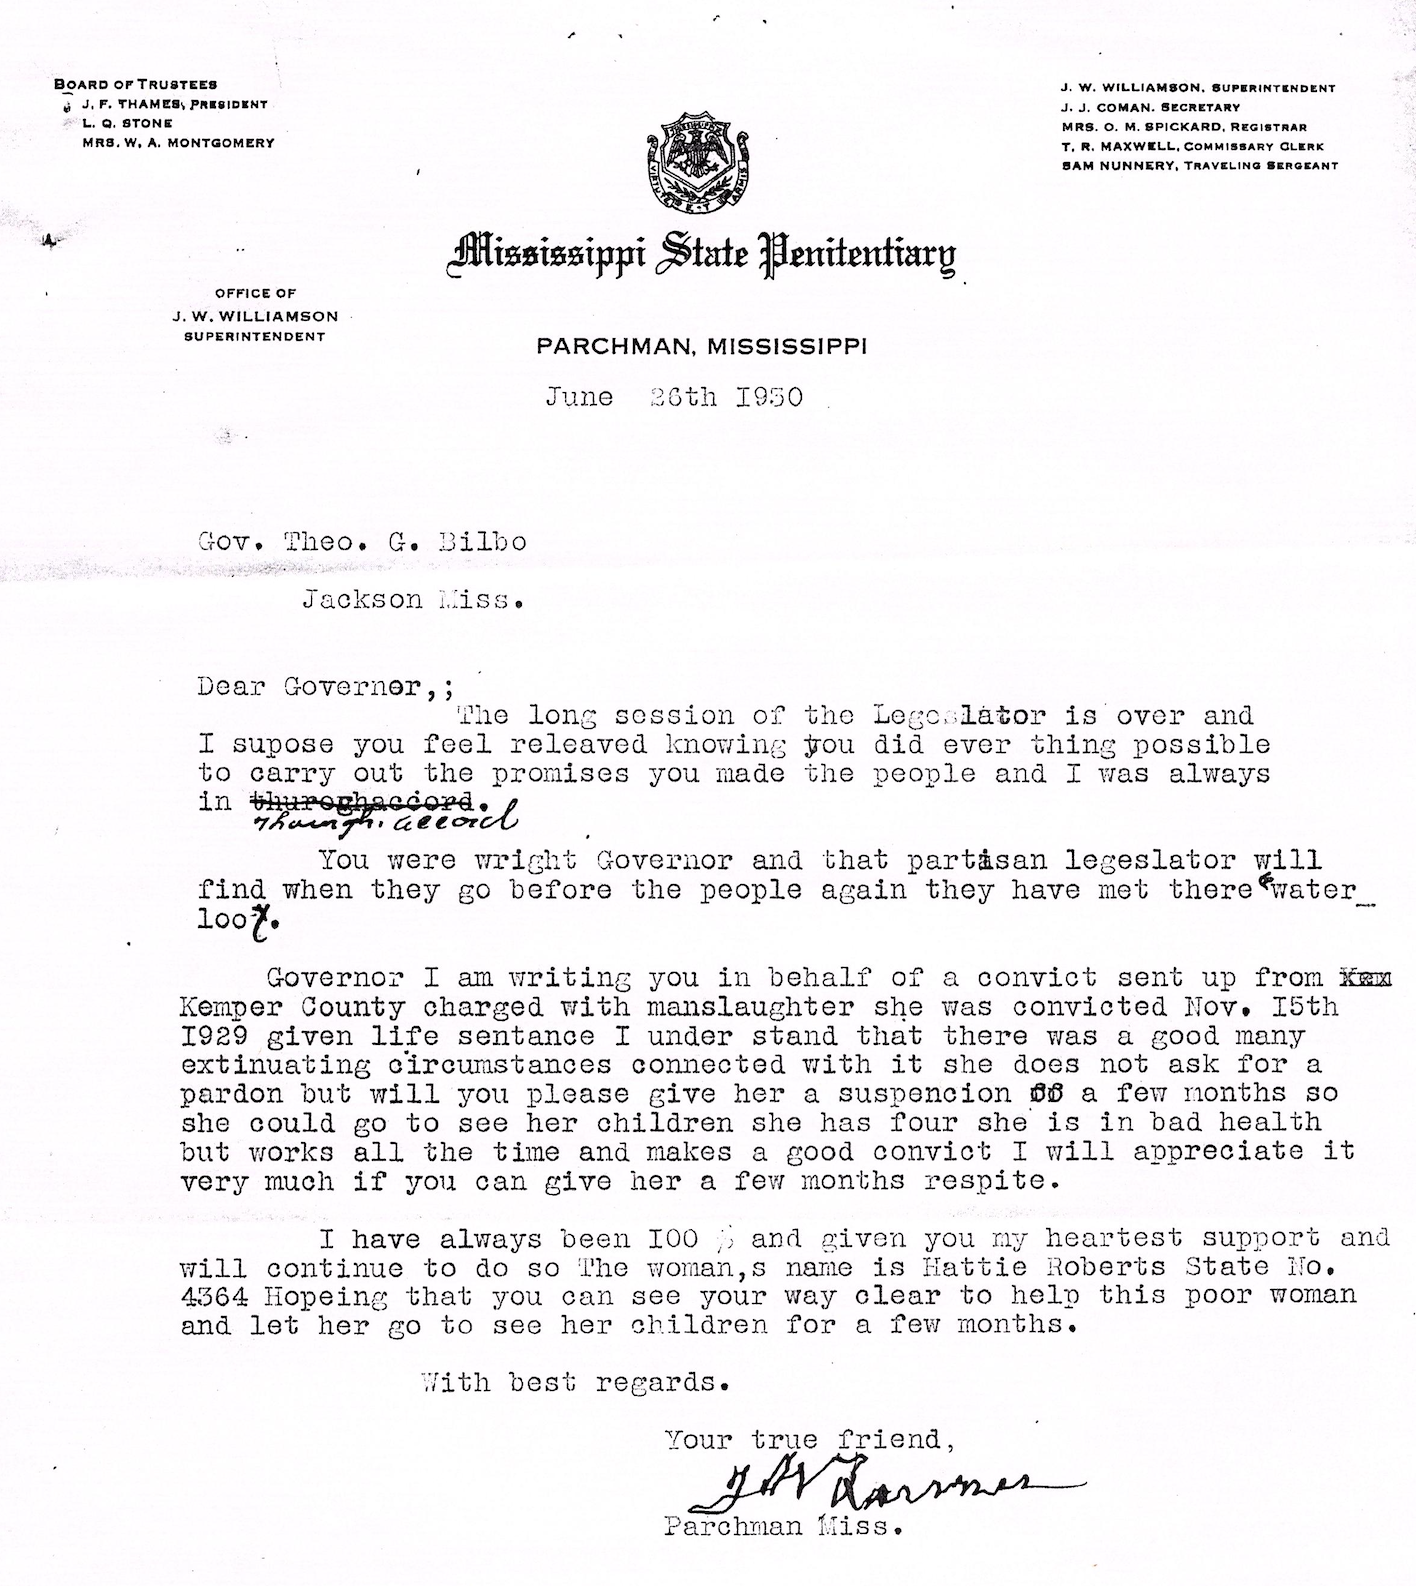 June 26, 1930 letter from Parchman to the Governor